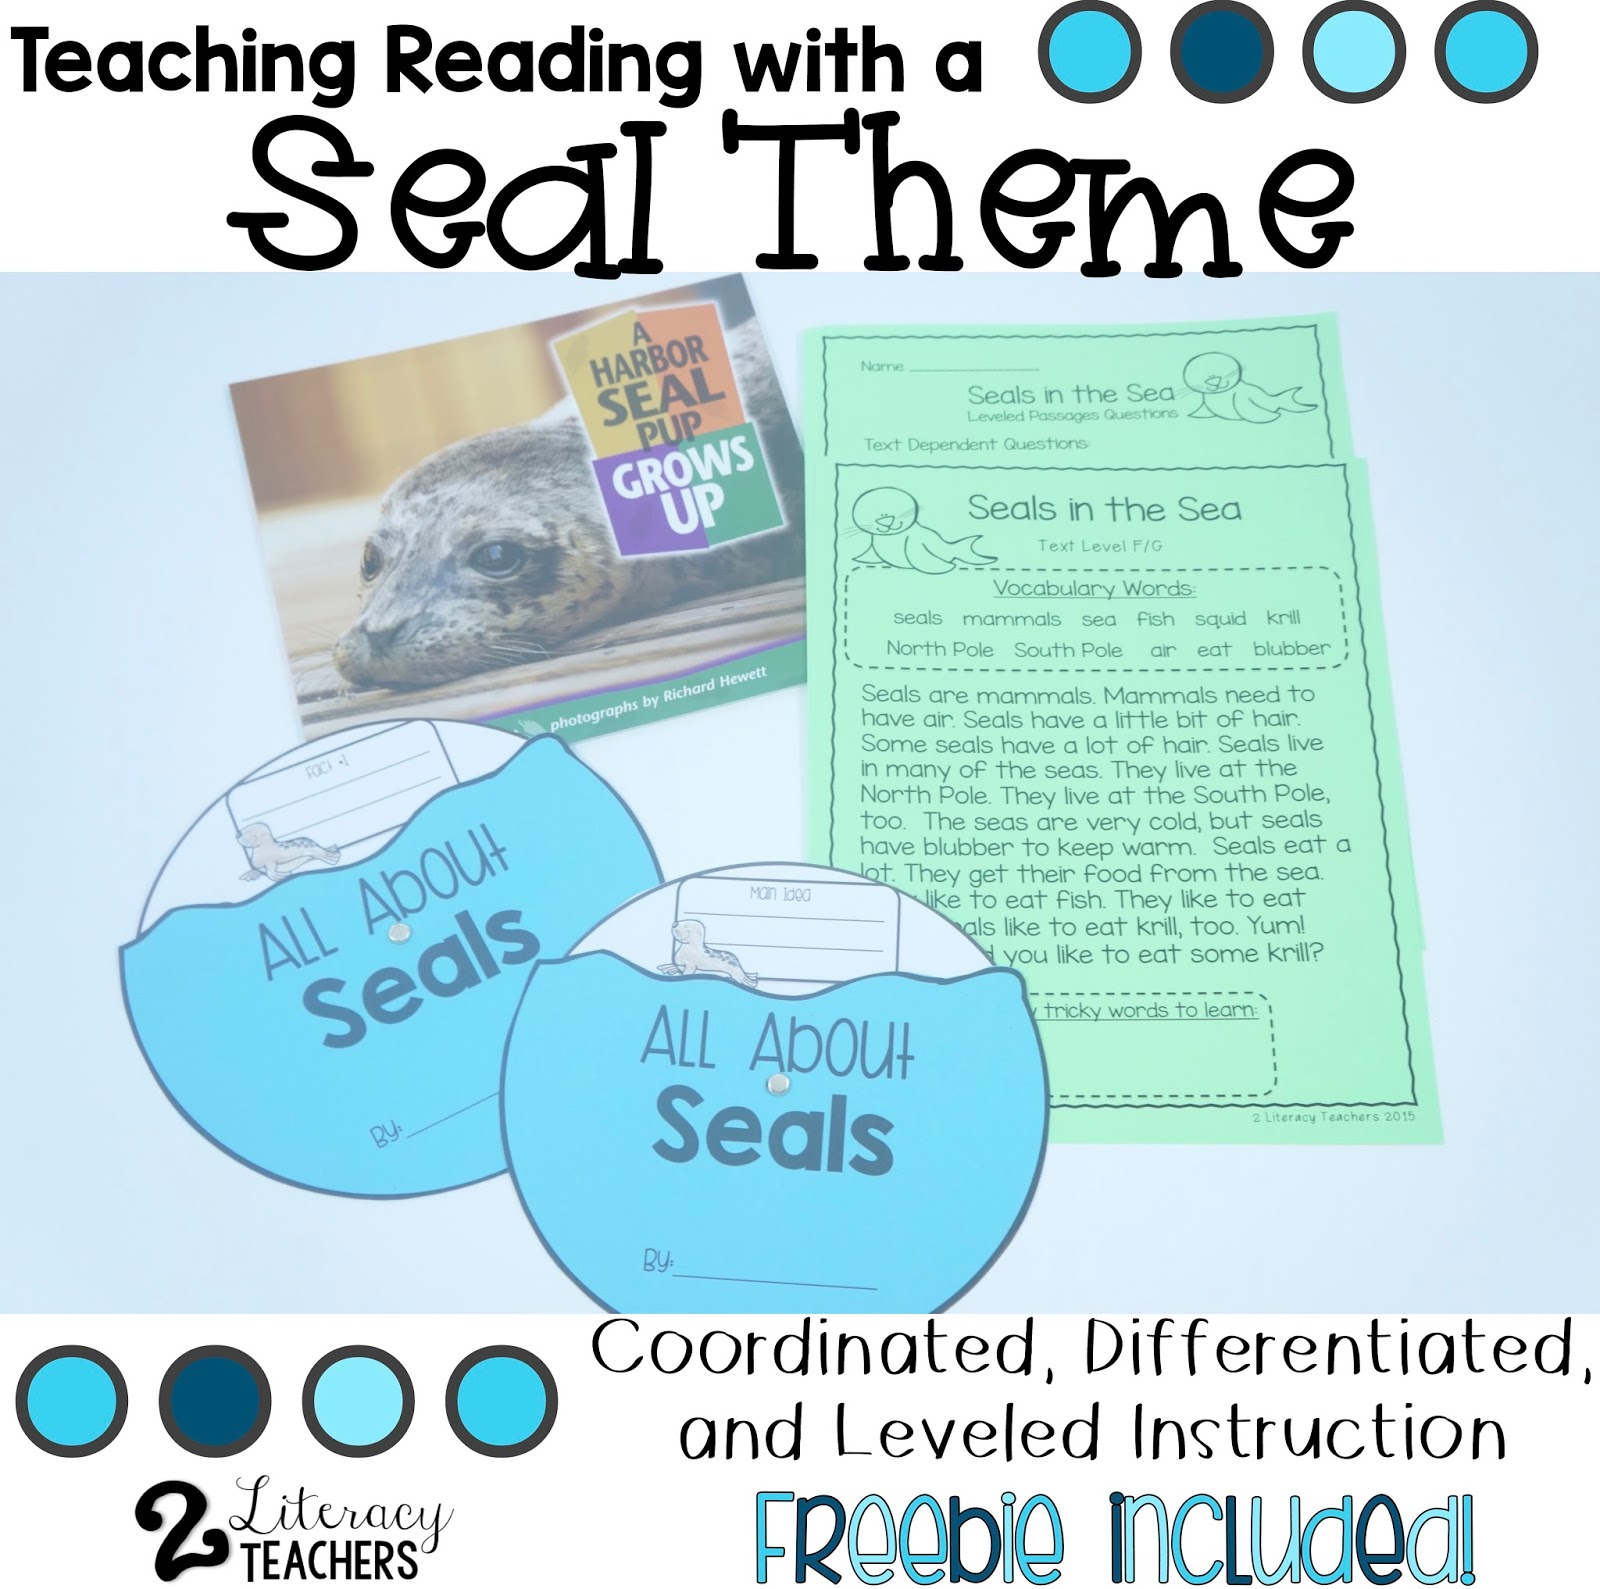 Teaching with a Seal Theme – Differentiated, Leveled Instruction and a Freebie!